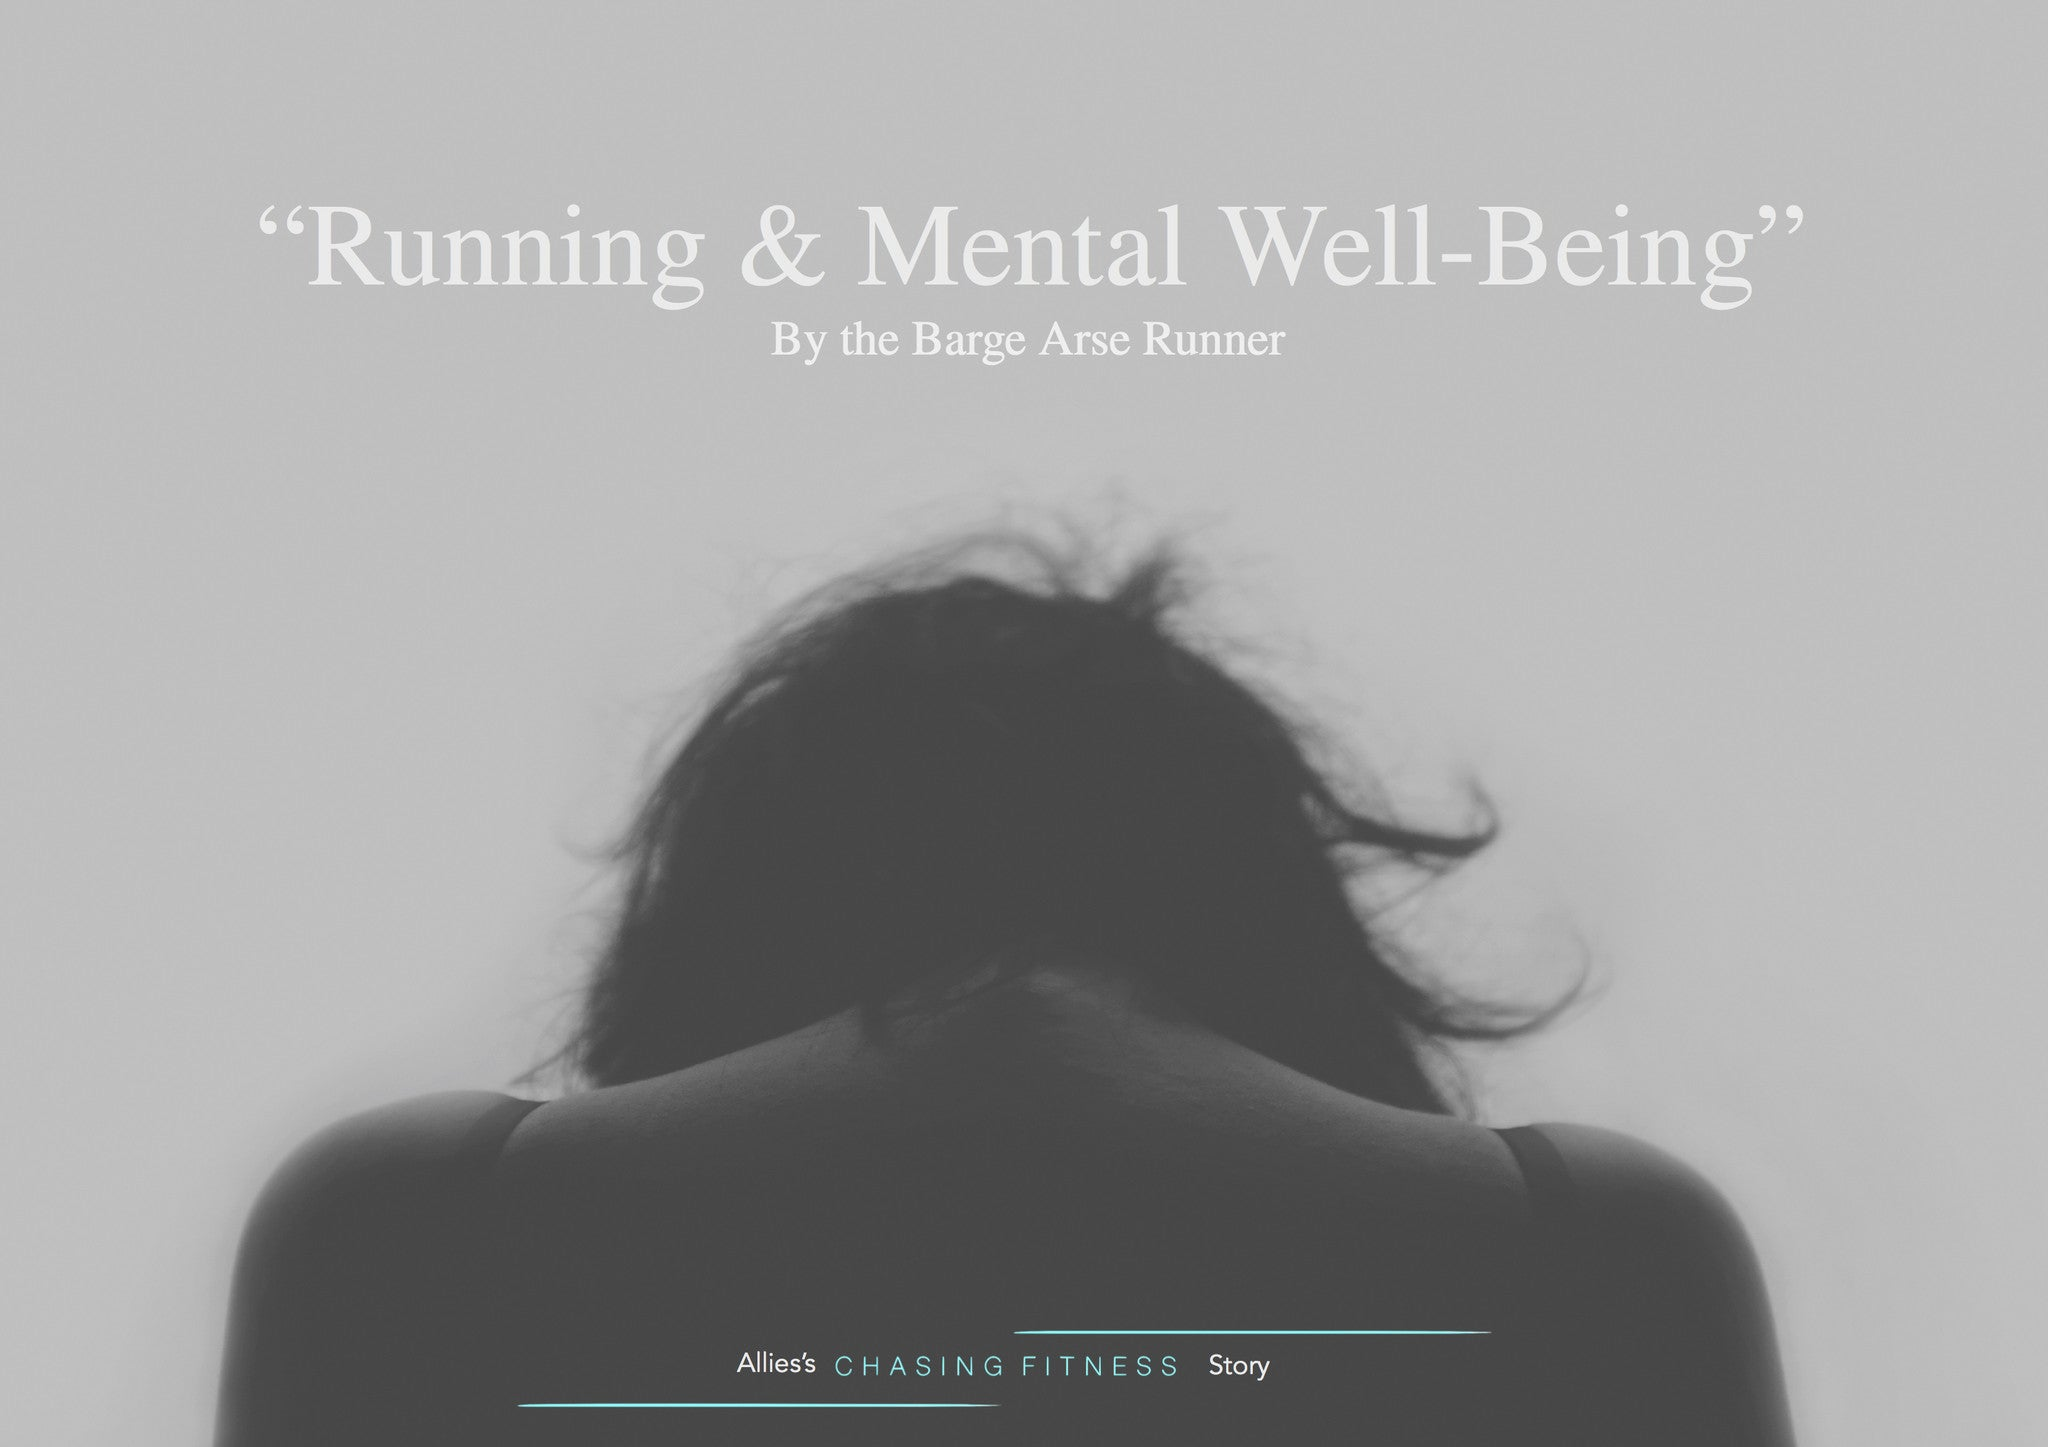 Running & Mental Well-Being